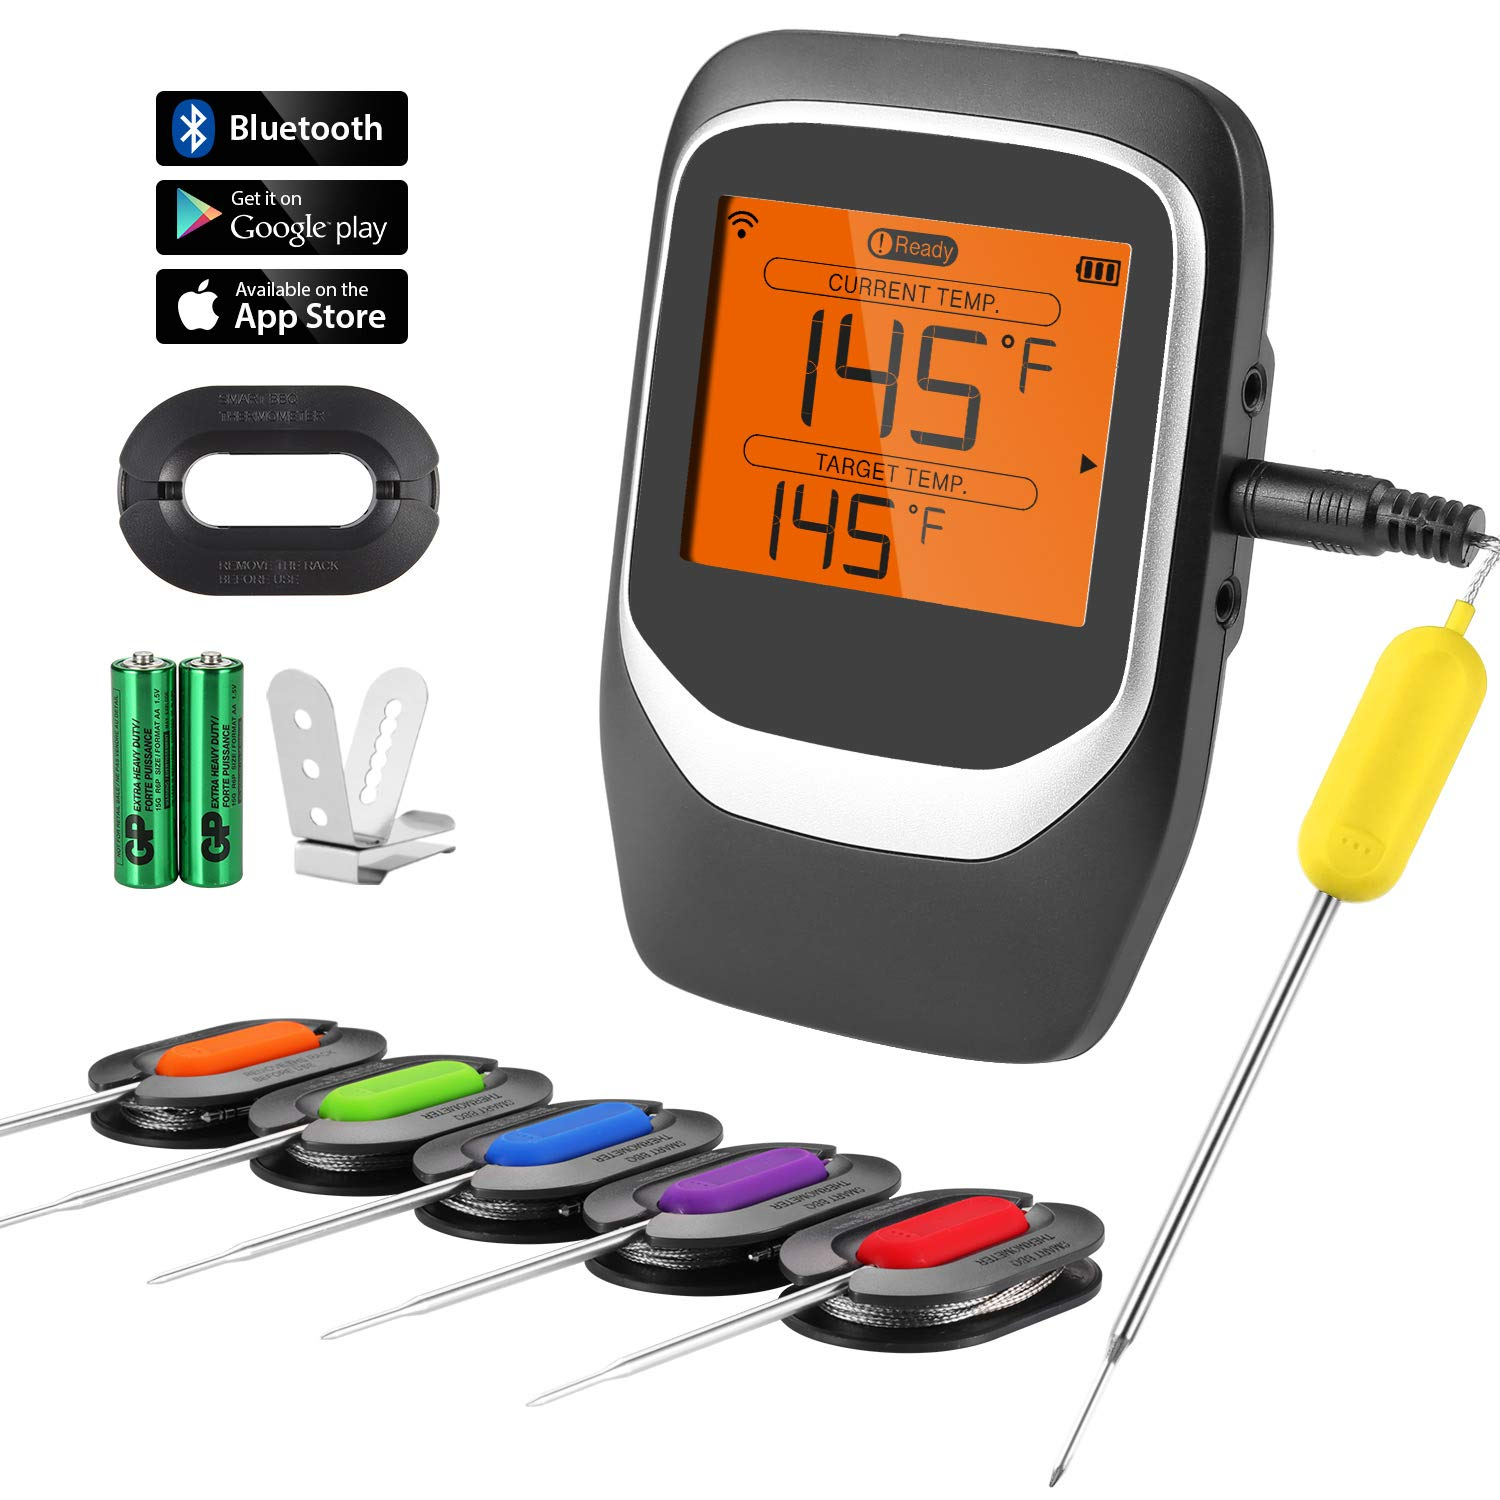 COMLIFE Digital Meat Thermometer, Bluetooth Wireless Cooking Food Thermometer with 6 Probes & Clip, Smart Instant Read Grill Thermometer with Large LCD Screen for Kitchen, BBQ, Oven, Smoker  by COMLIFE